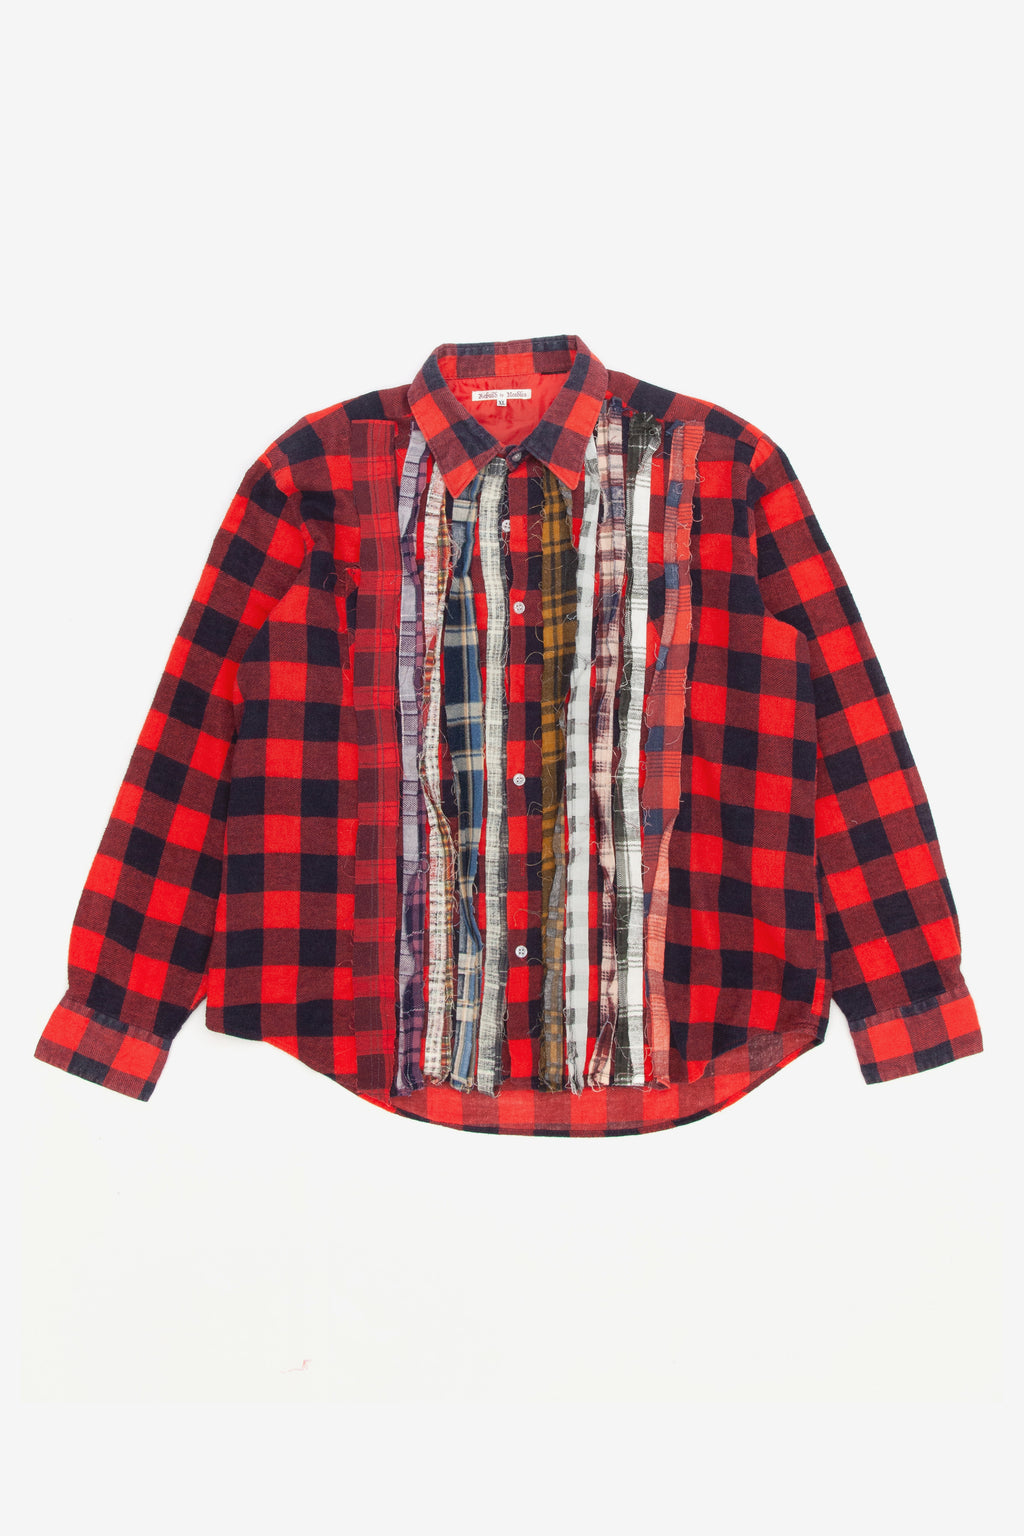 Needles rebuild ribbon flannel shirt - XL 1